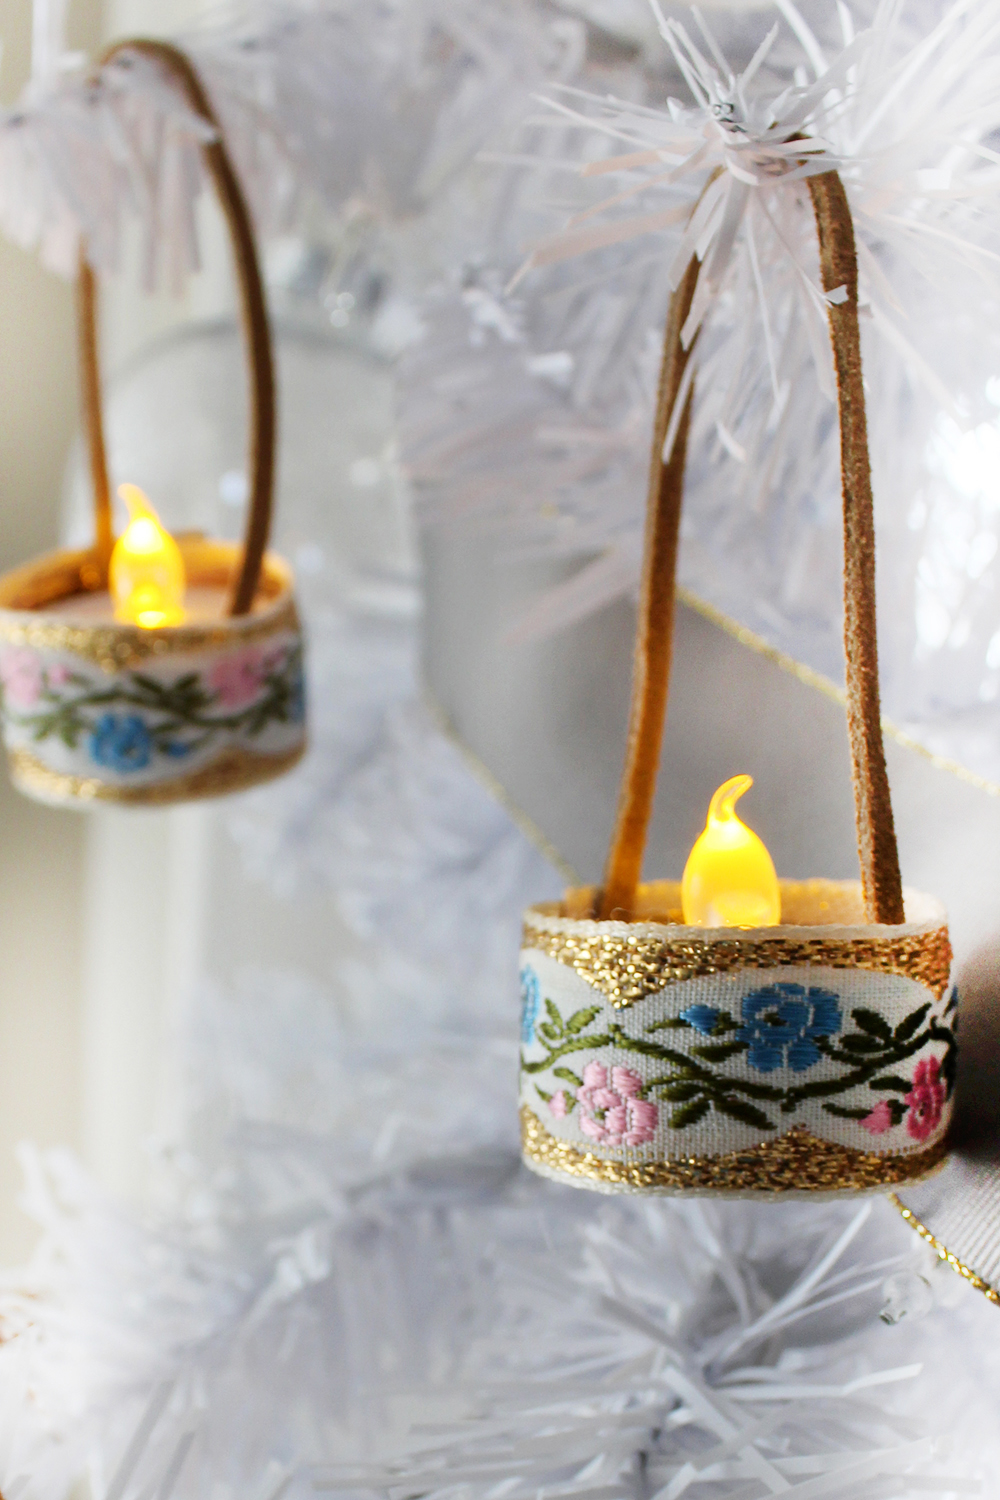 how to make your own mini tealight ornaments, budget friendly and easy! #ChristmasDIY #Craft #HandmadChristmas #Ornament